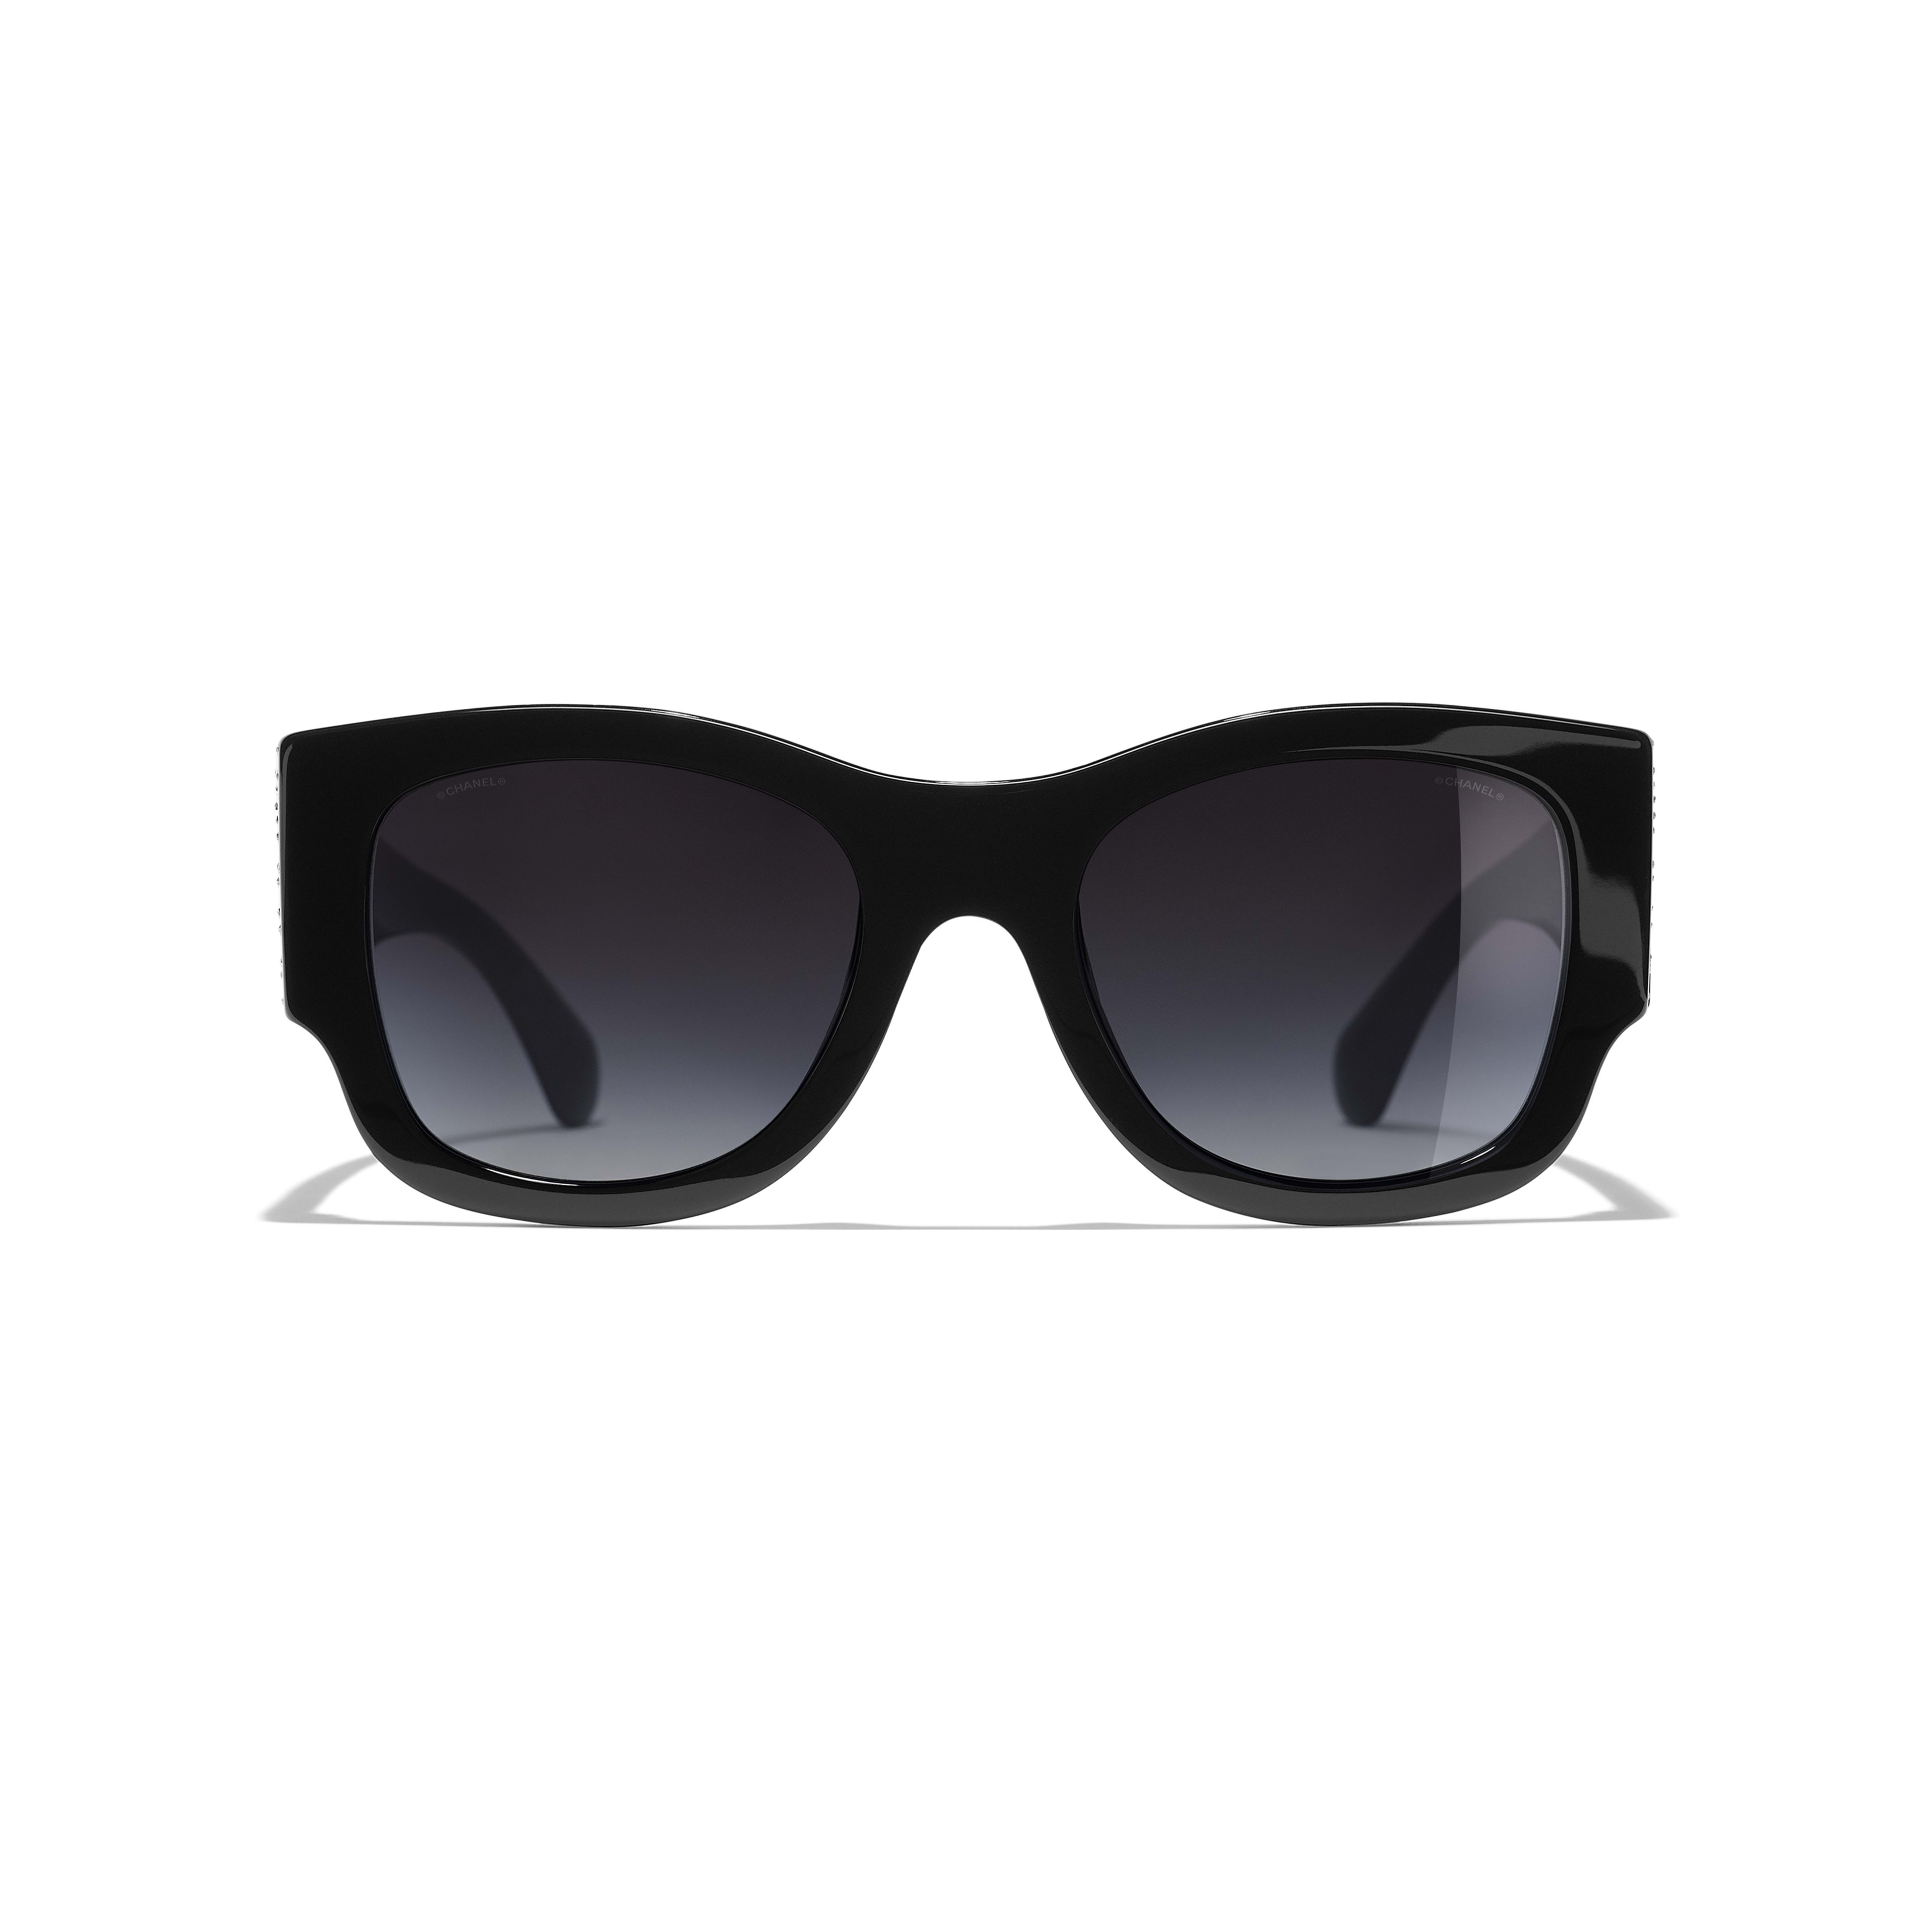 Rectangle Sunglasses - Black - Acetate & Strass - Alternative view - see full sized version